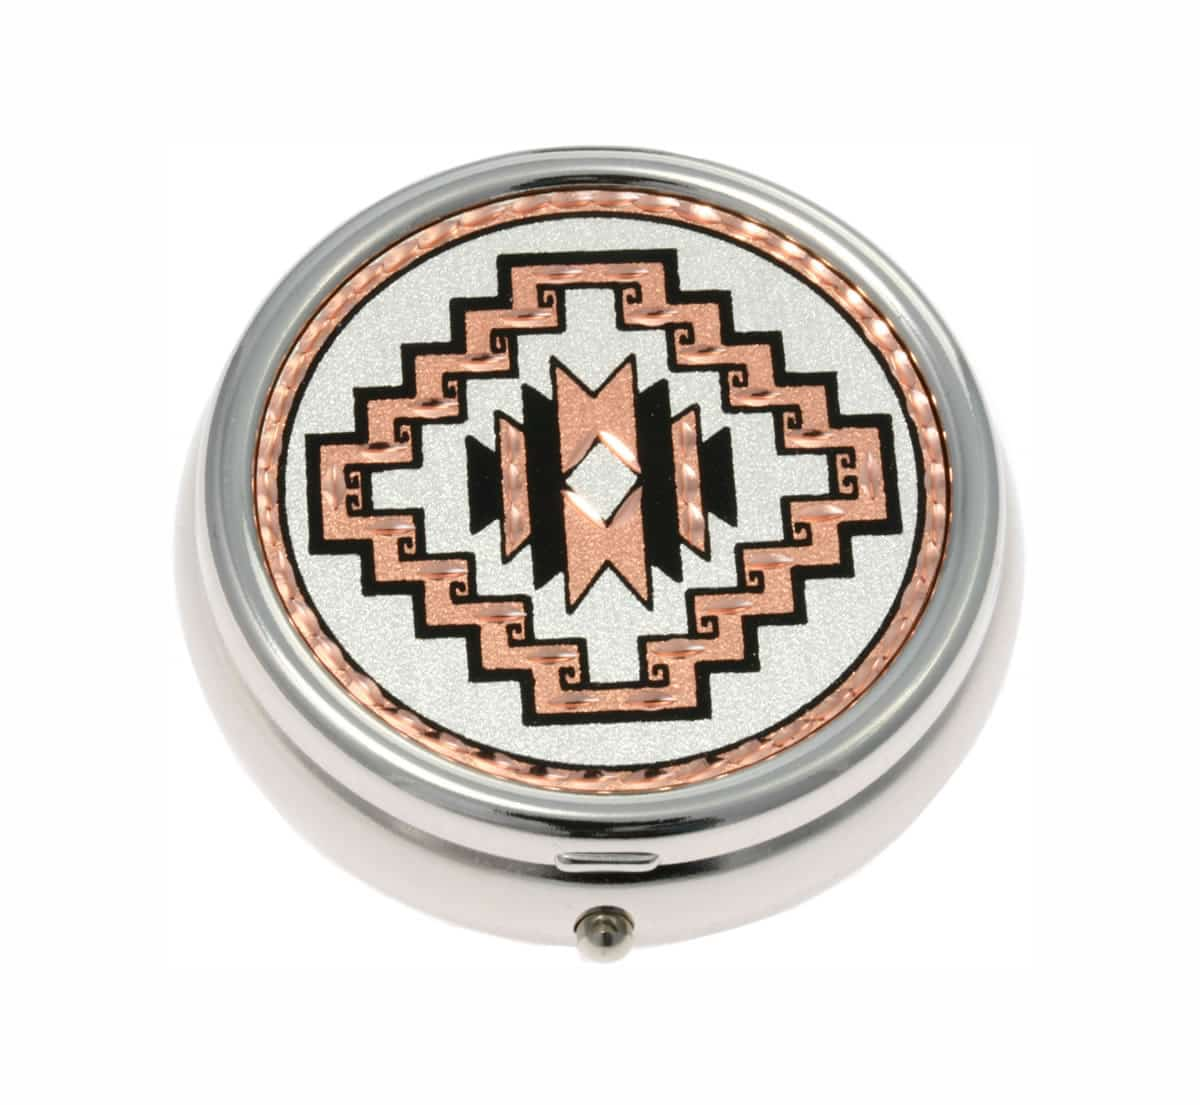 Buy SW Native American Handmade Copper Artwork Decorated Stylish Pill Boxes